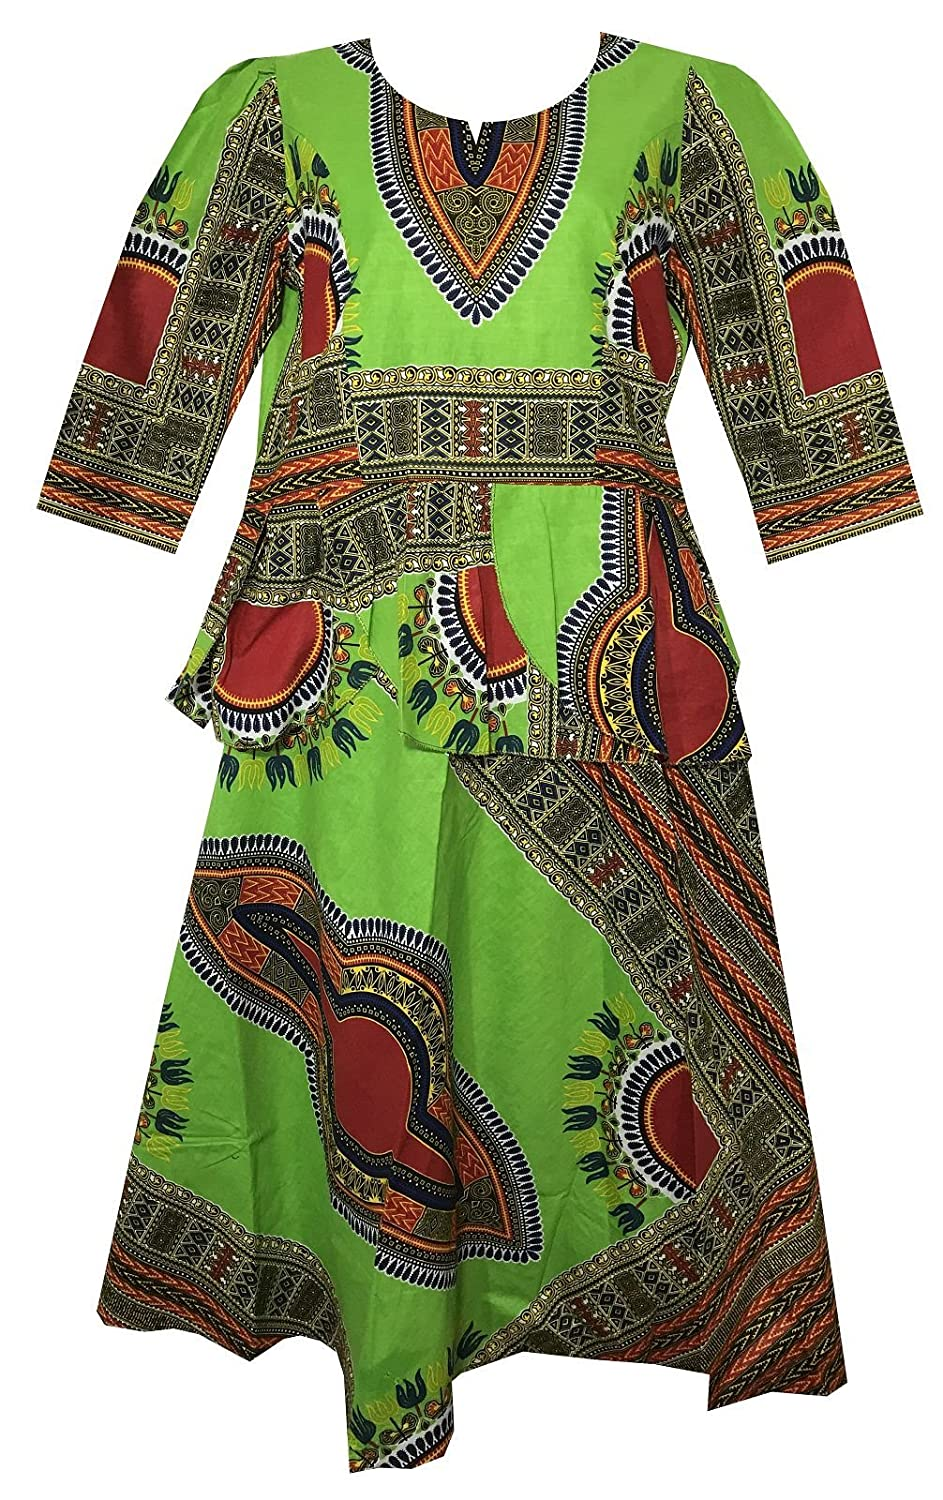 Decoraapparel African Girls Wax Dashiki Wrap Skirt Suit Women Maxi Outfit Suit M, L, XL 736385705069